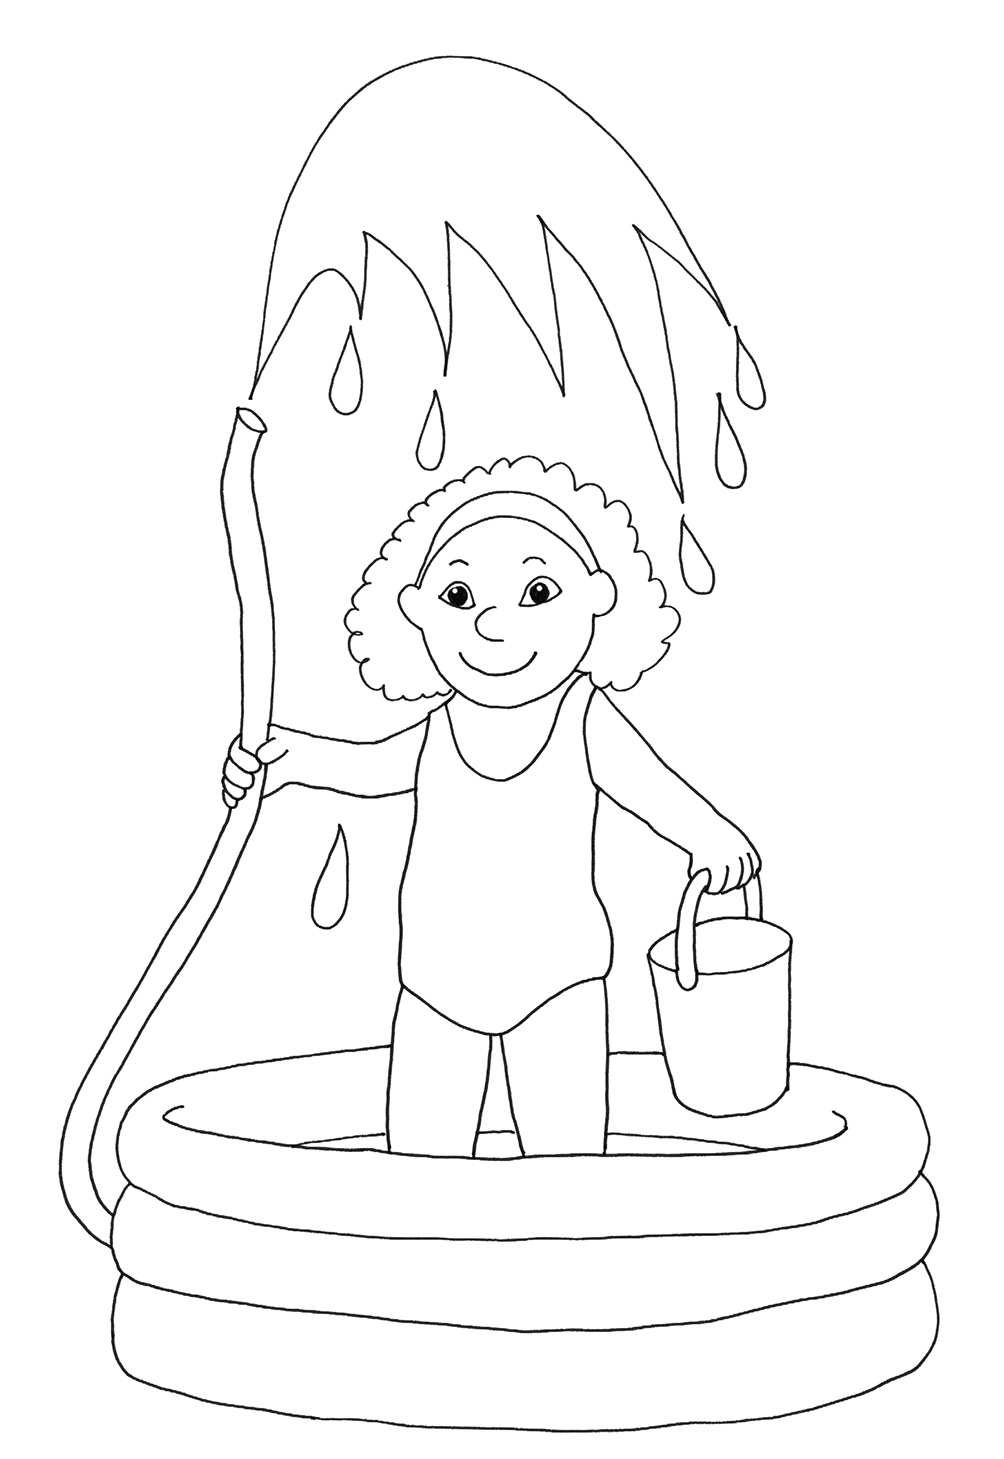 summer coloring sheet for kids